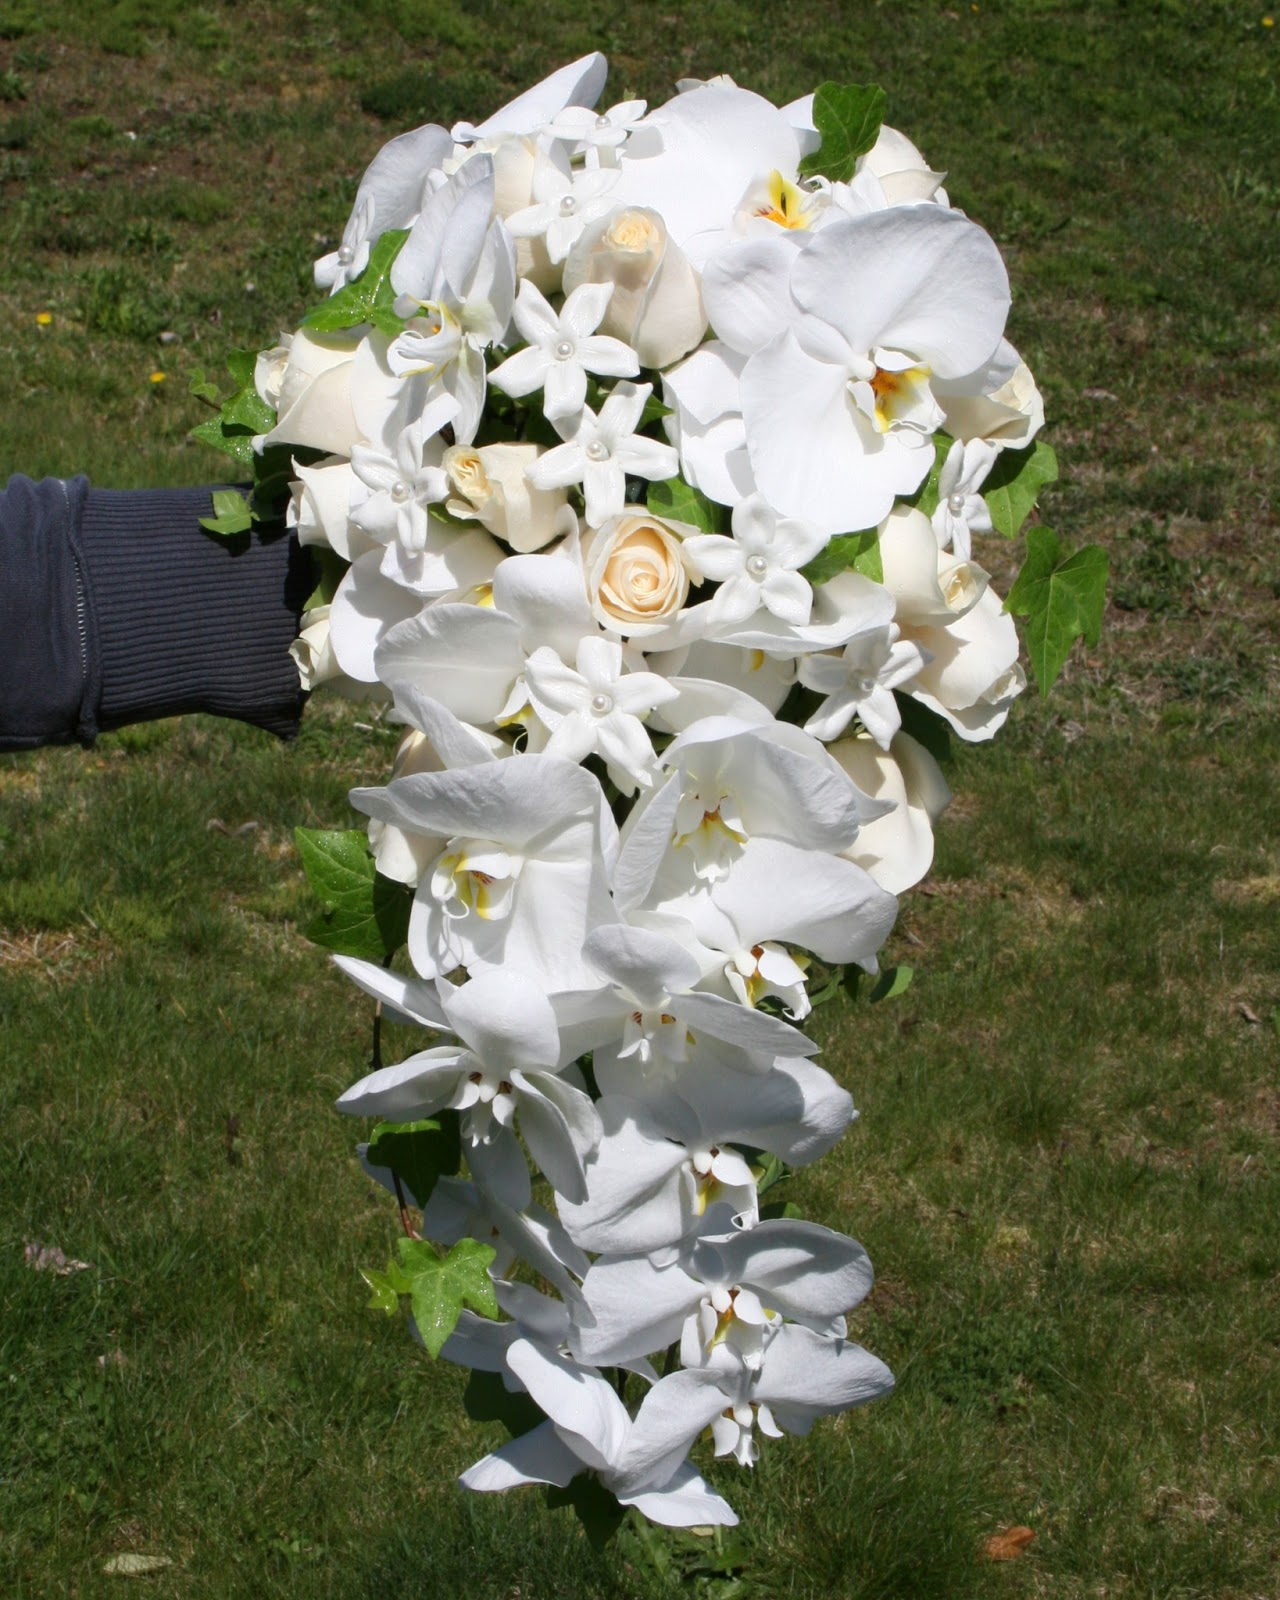 Wedding Flower Bouquets Ideas: About Marriage: Marriage Flower Bouquet 2013